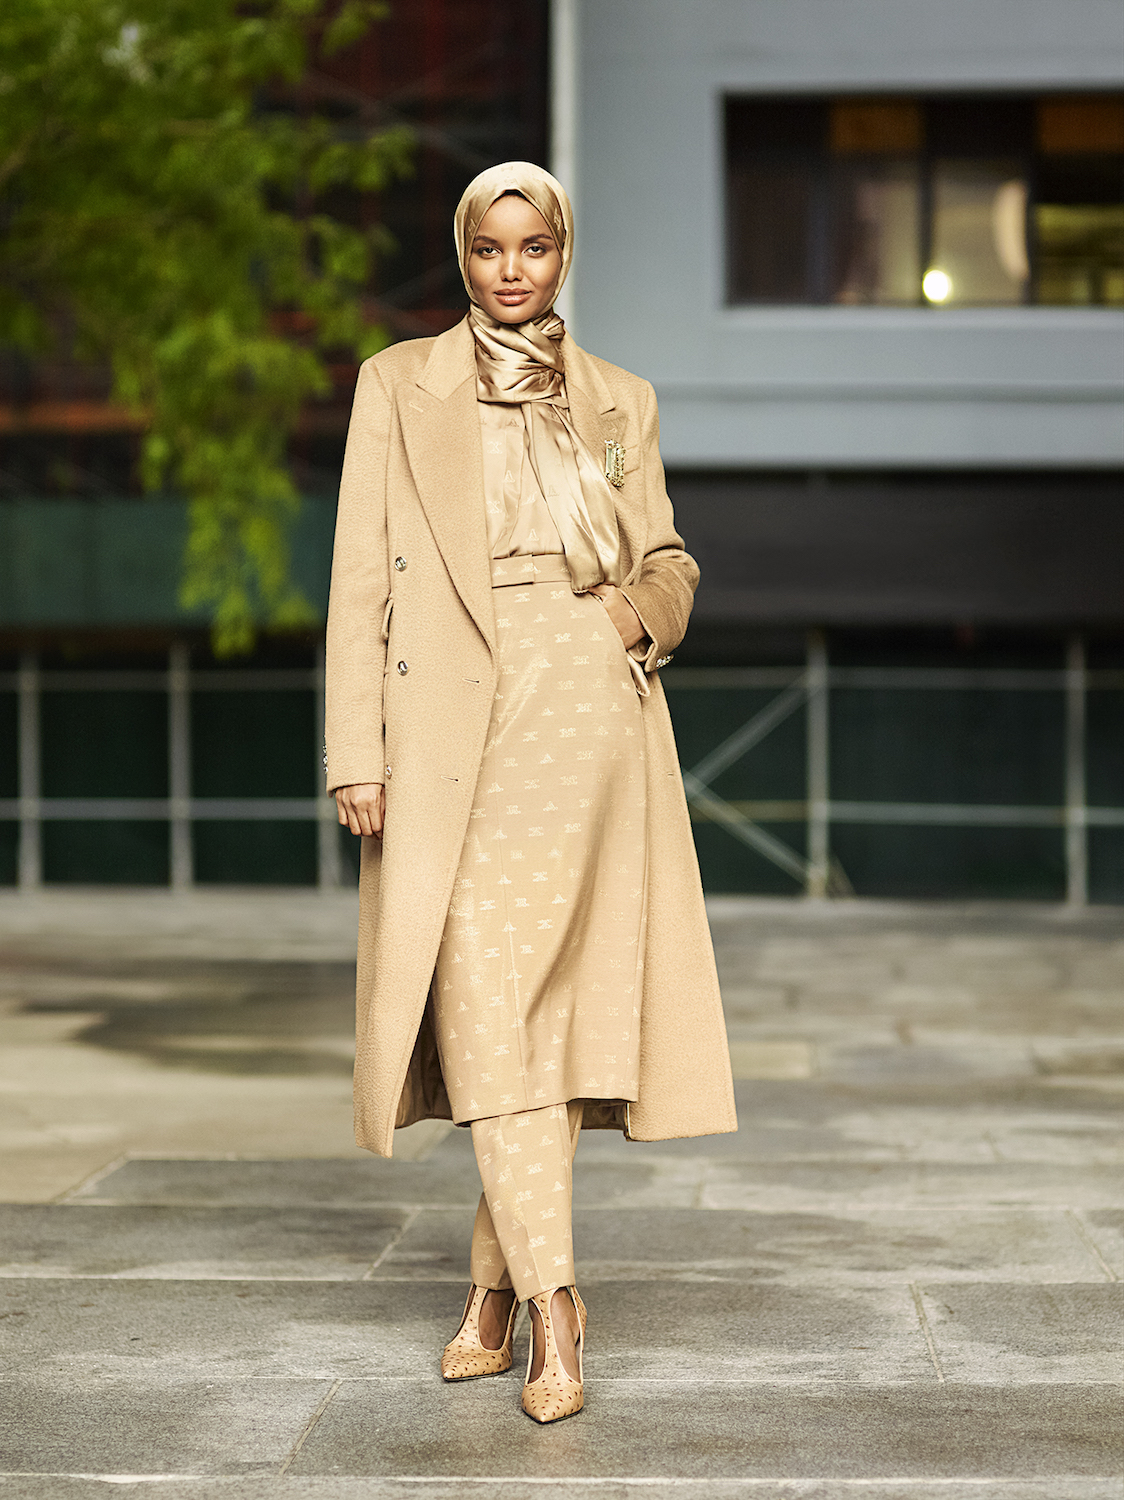 Editorial image of Halima wearing the capsule collection